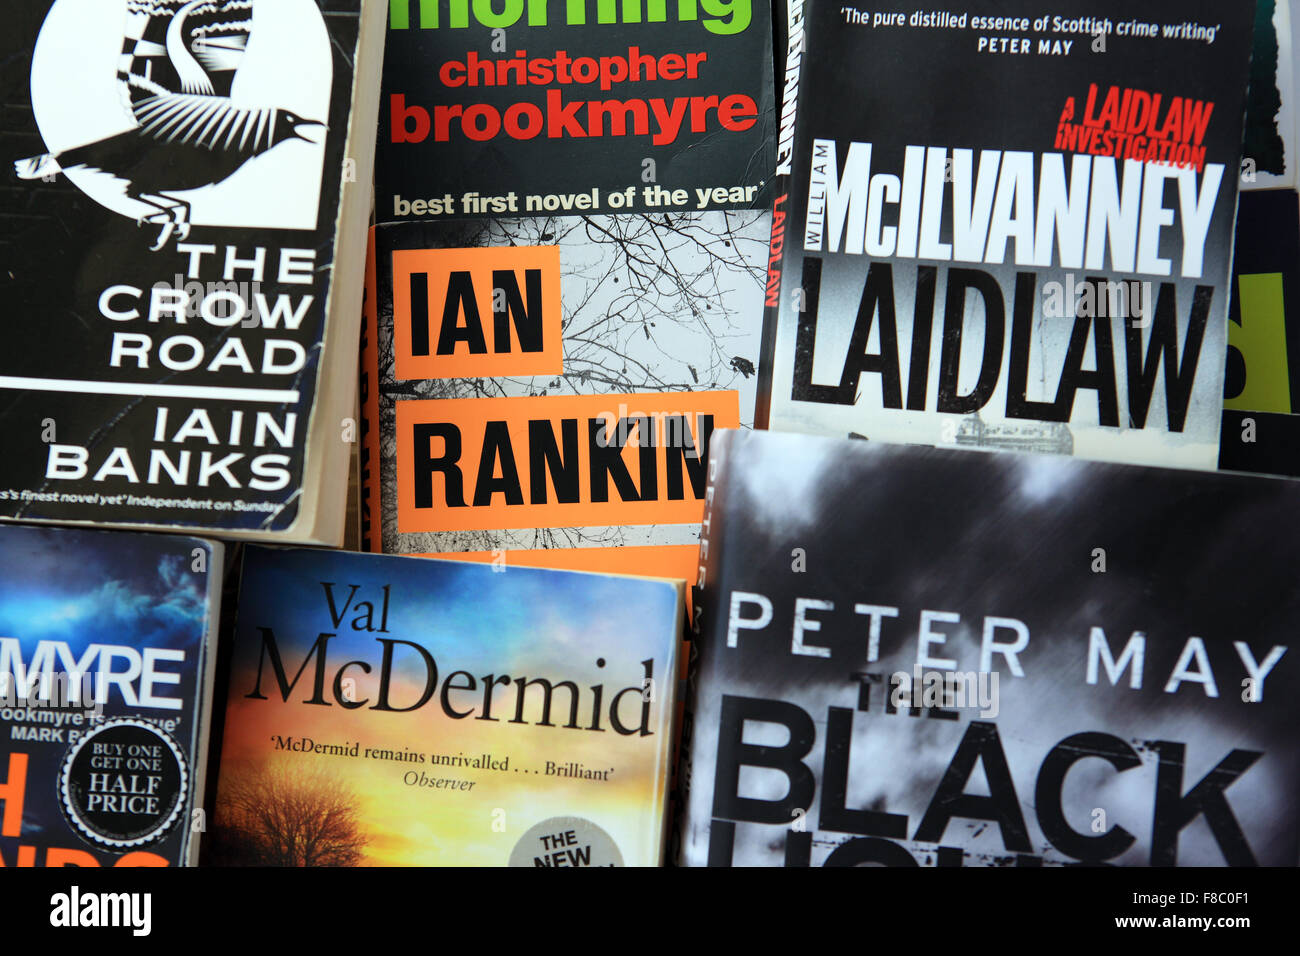 Books by various Scottish authors - Stock Image